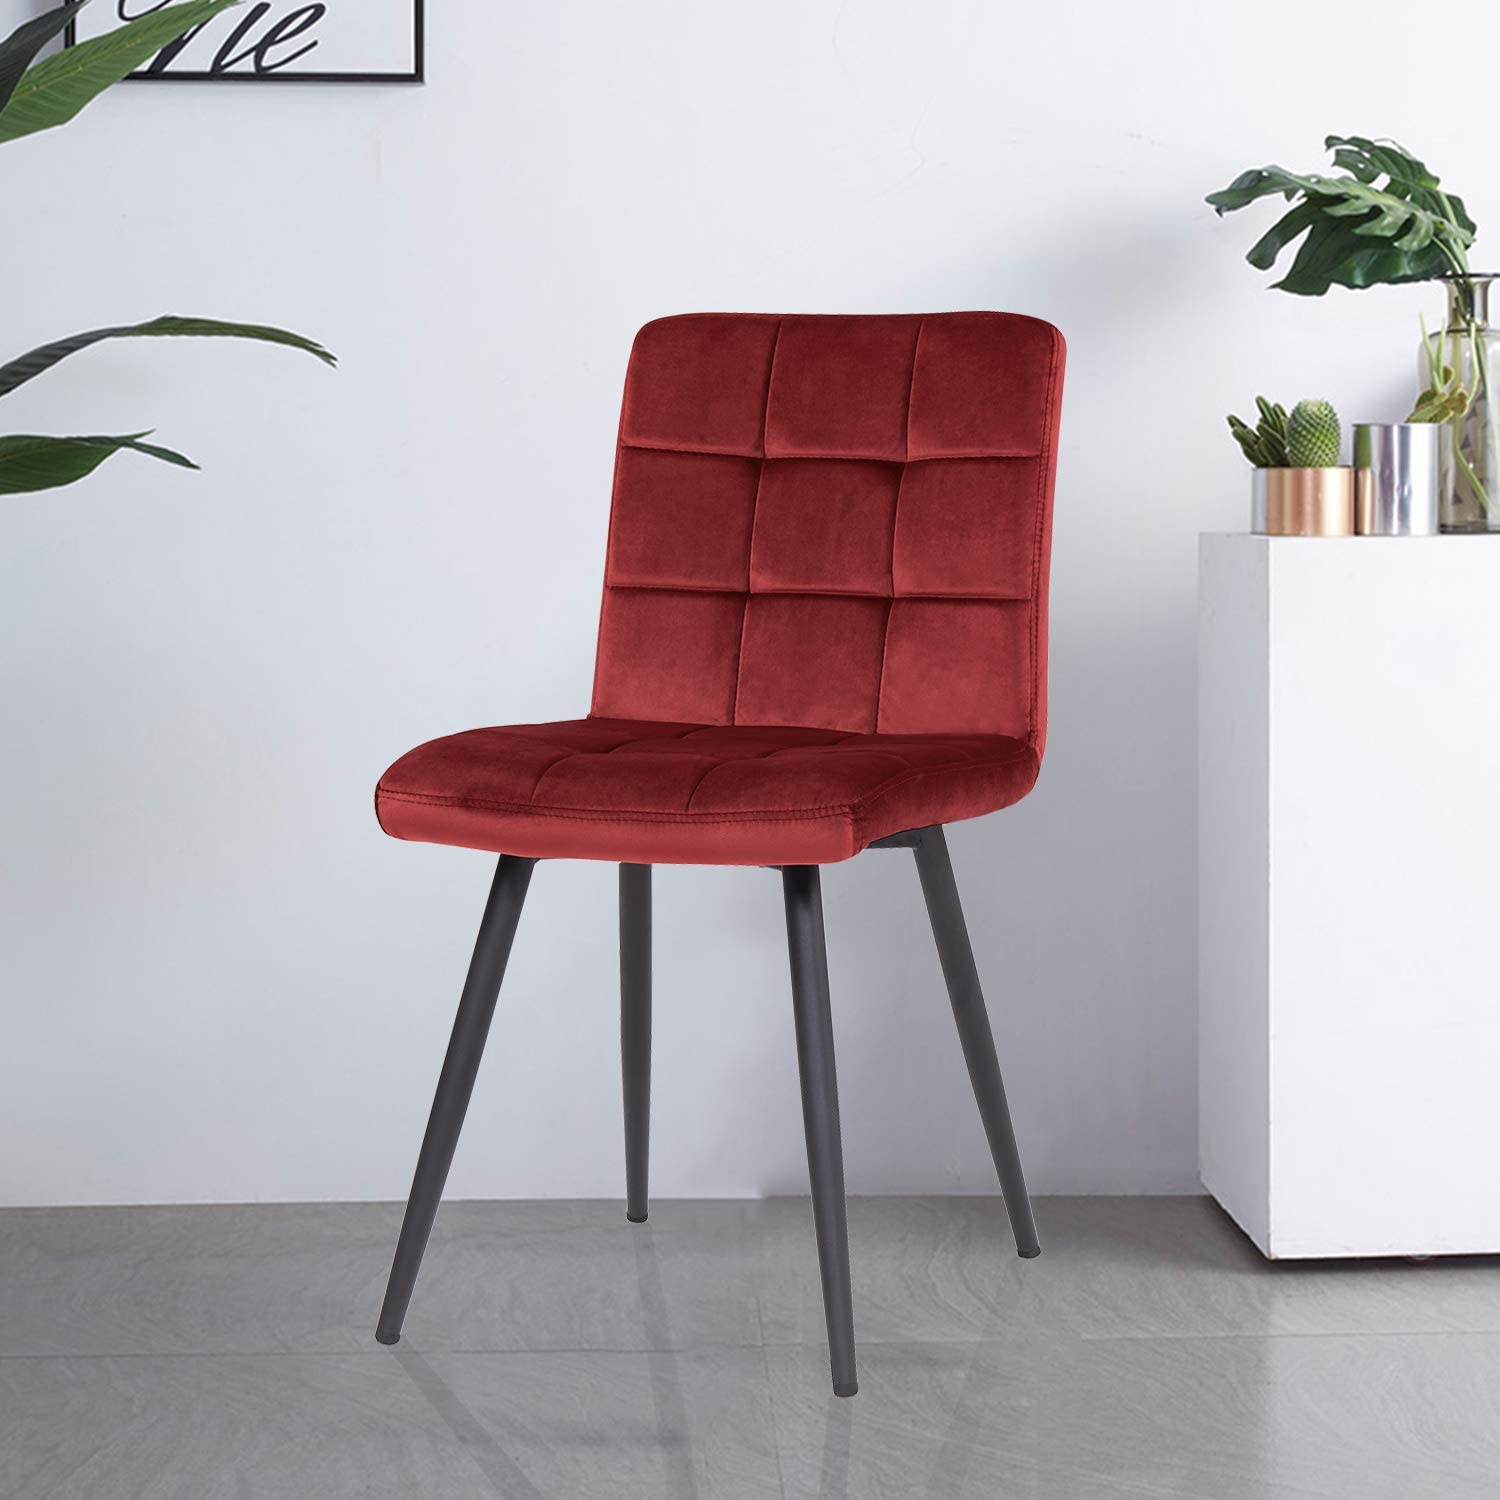 Duhome Dining Room Chairs Wingback Modern Eames Kitchen Velvet Chair Set of 2